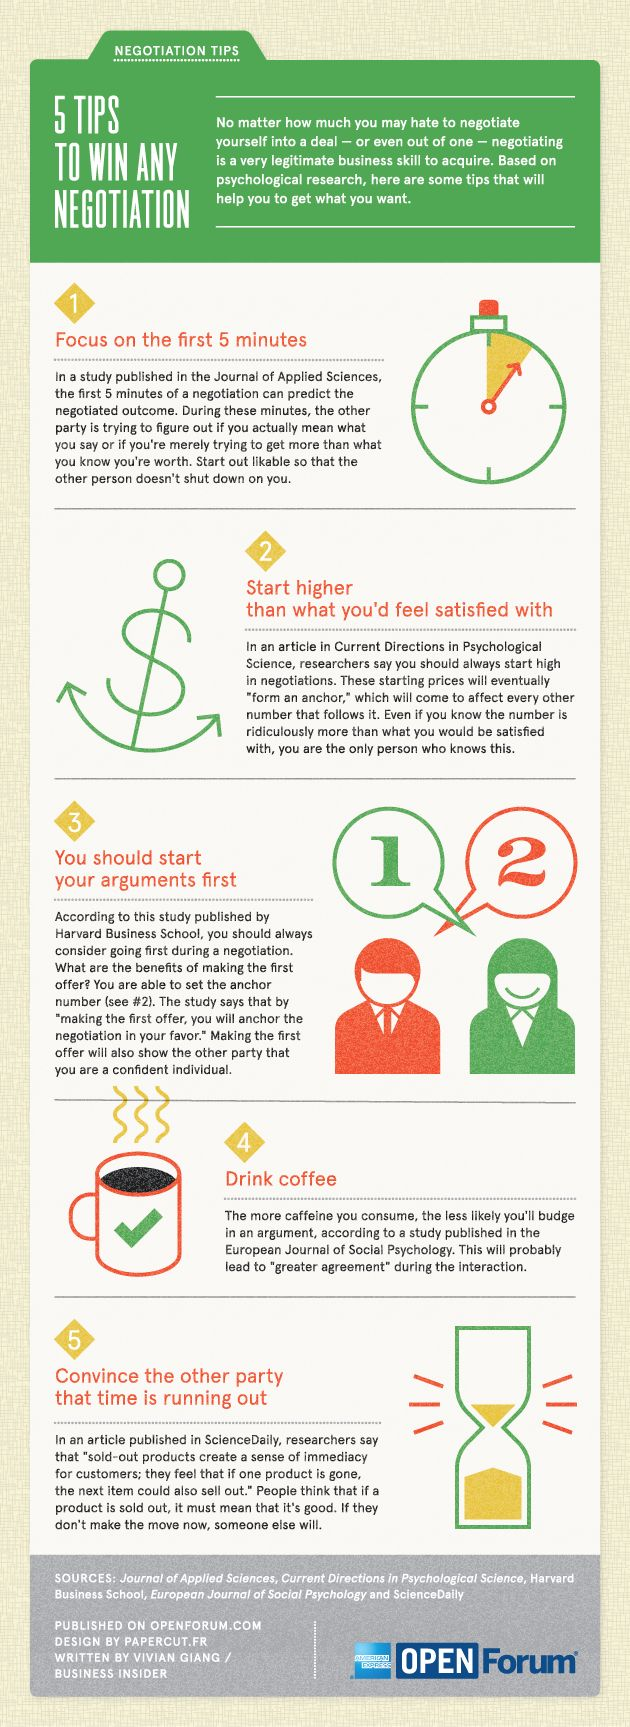 5 Tips to Win Any Negotiation - OPEN Forum :: American Express OPEN Forum